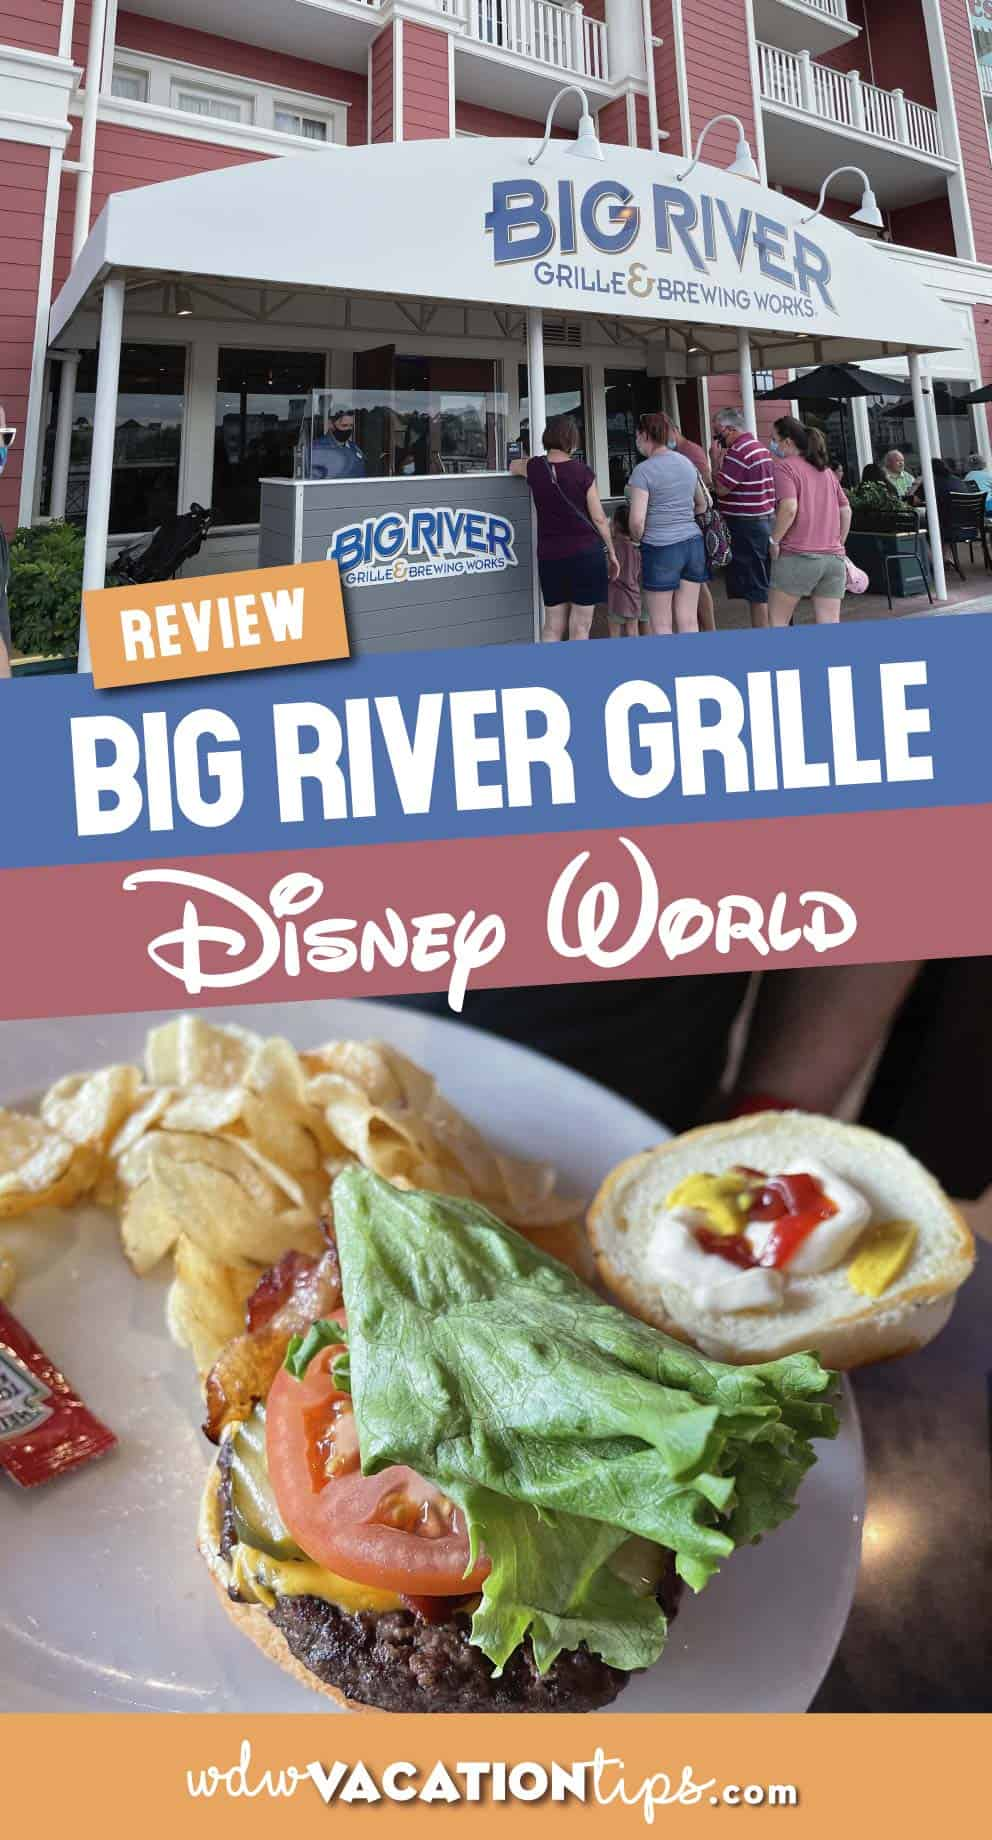 Big River Grille review